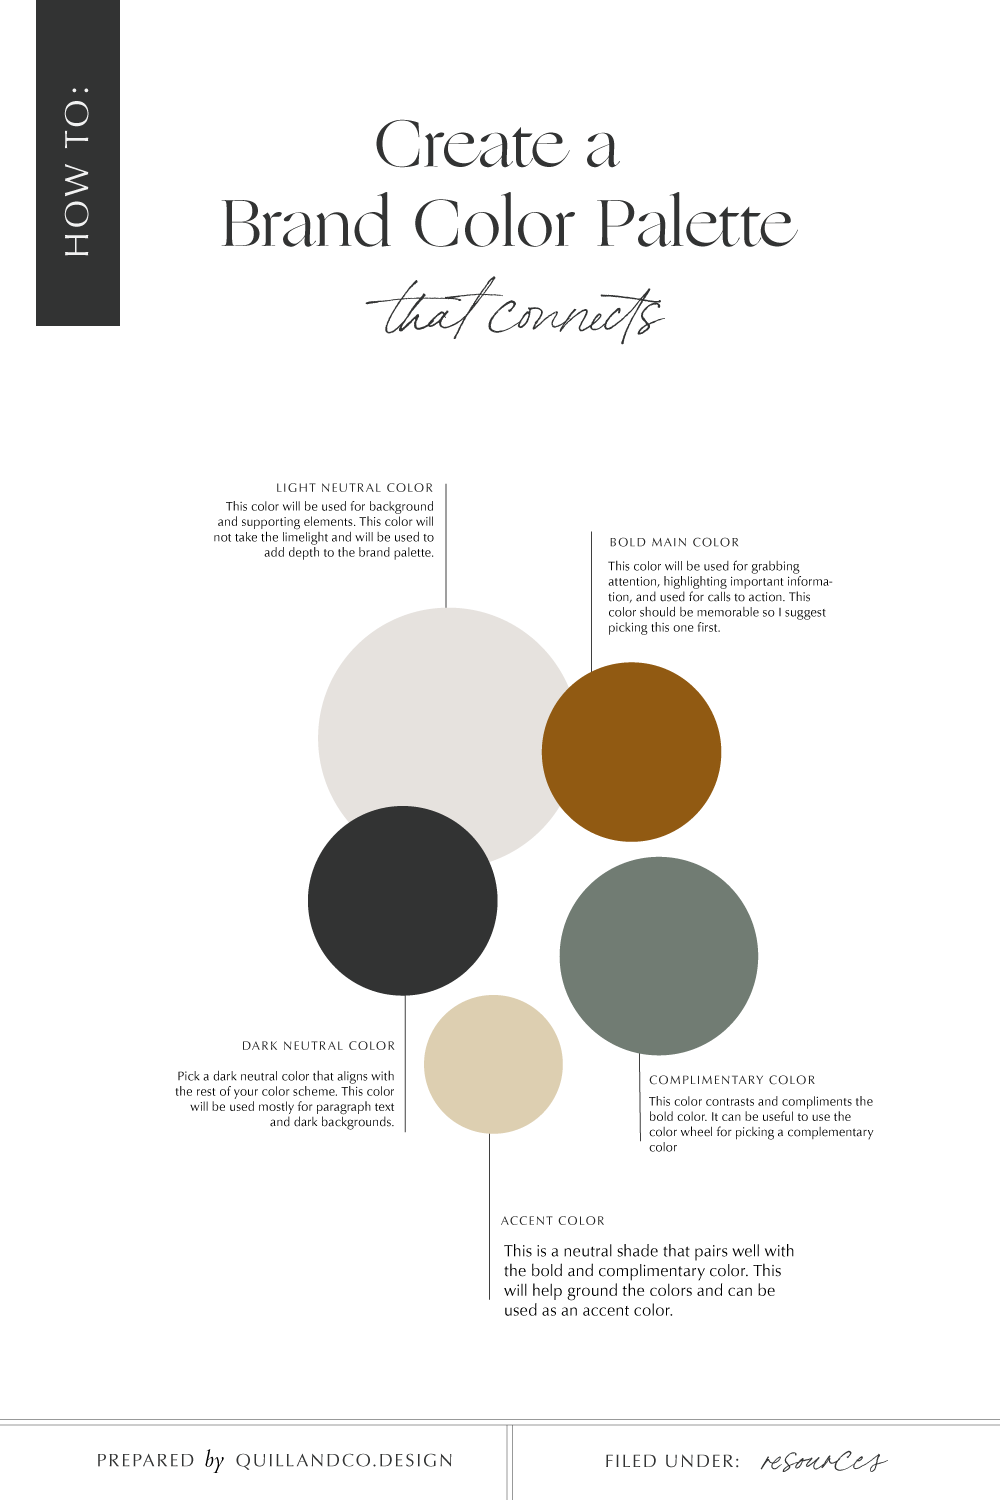 How to Create a Brand Color Palette that Converts